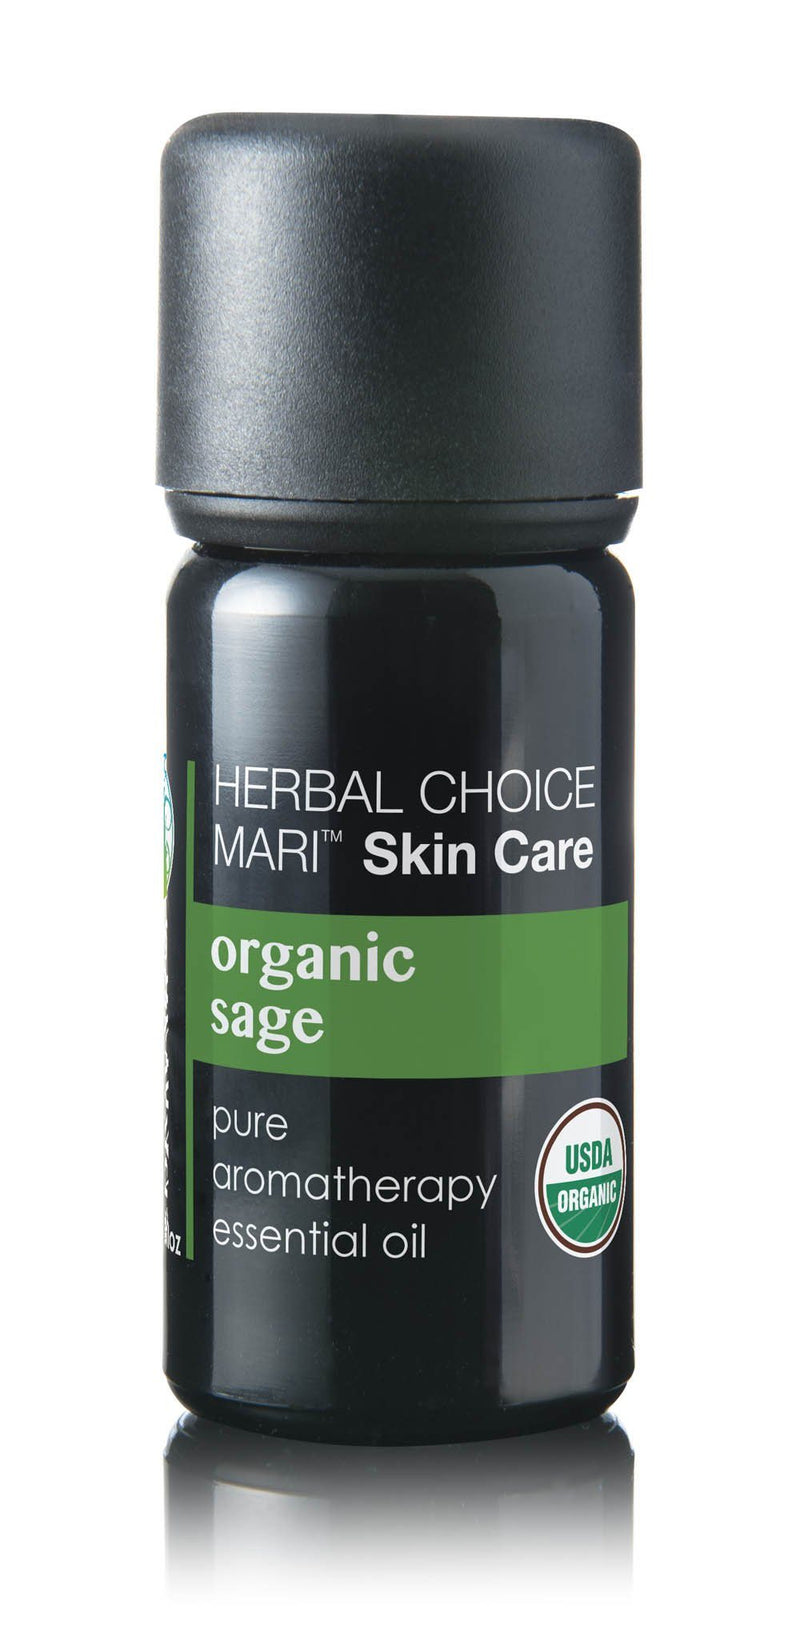 Herbal Choice Mari Organic Sage Essential Oil; 0.3floz Glass - Herbal Choice Mari Organic Sage Essential Oil; 0.3floz Glass - Herbal Choice Mari Organic Sage Essential Oil; 0.3floz Glass